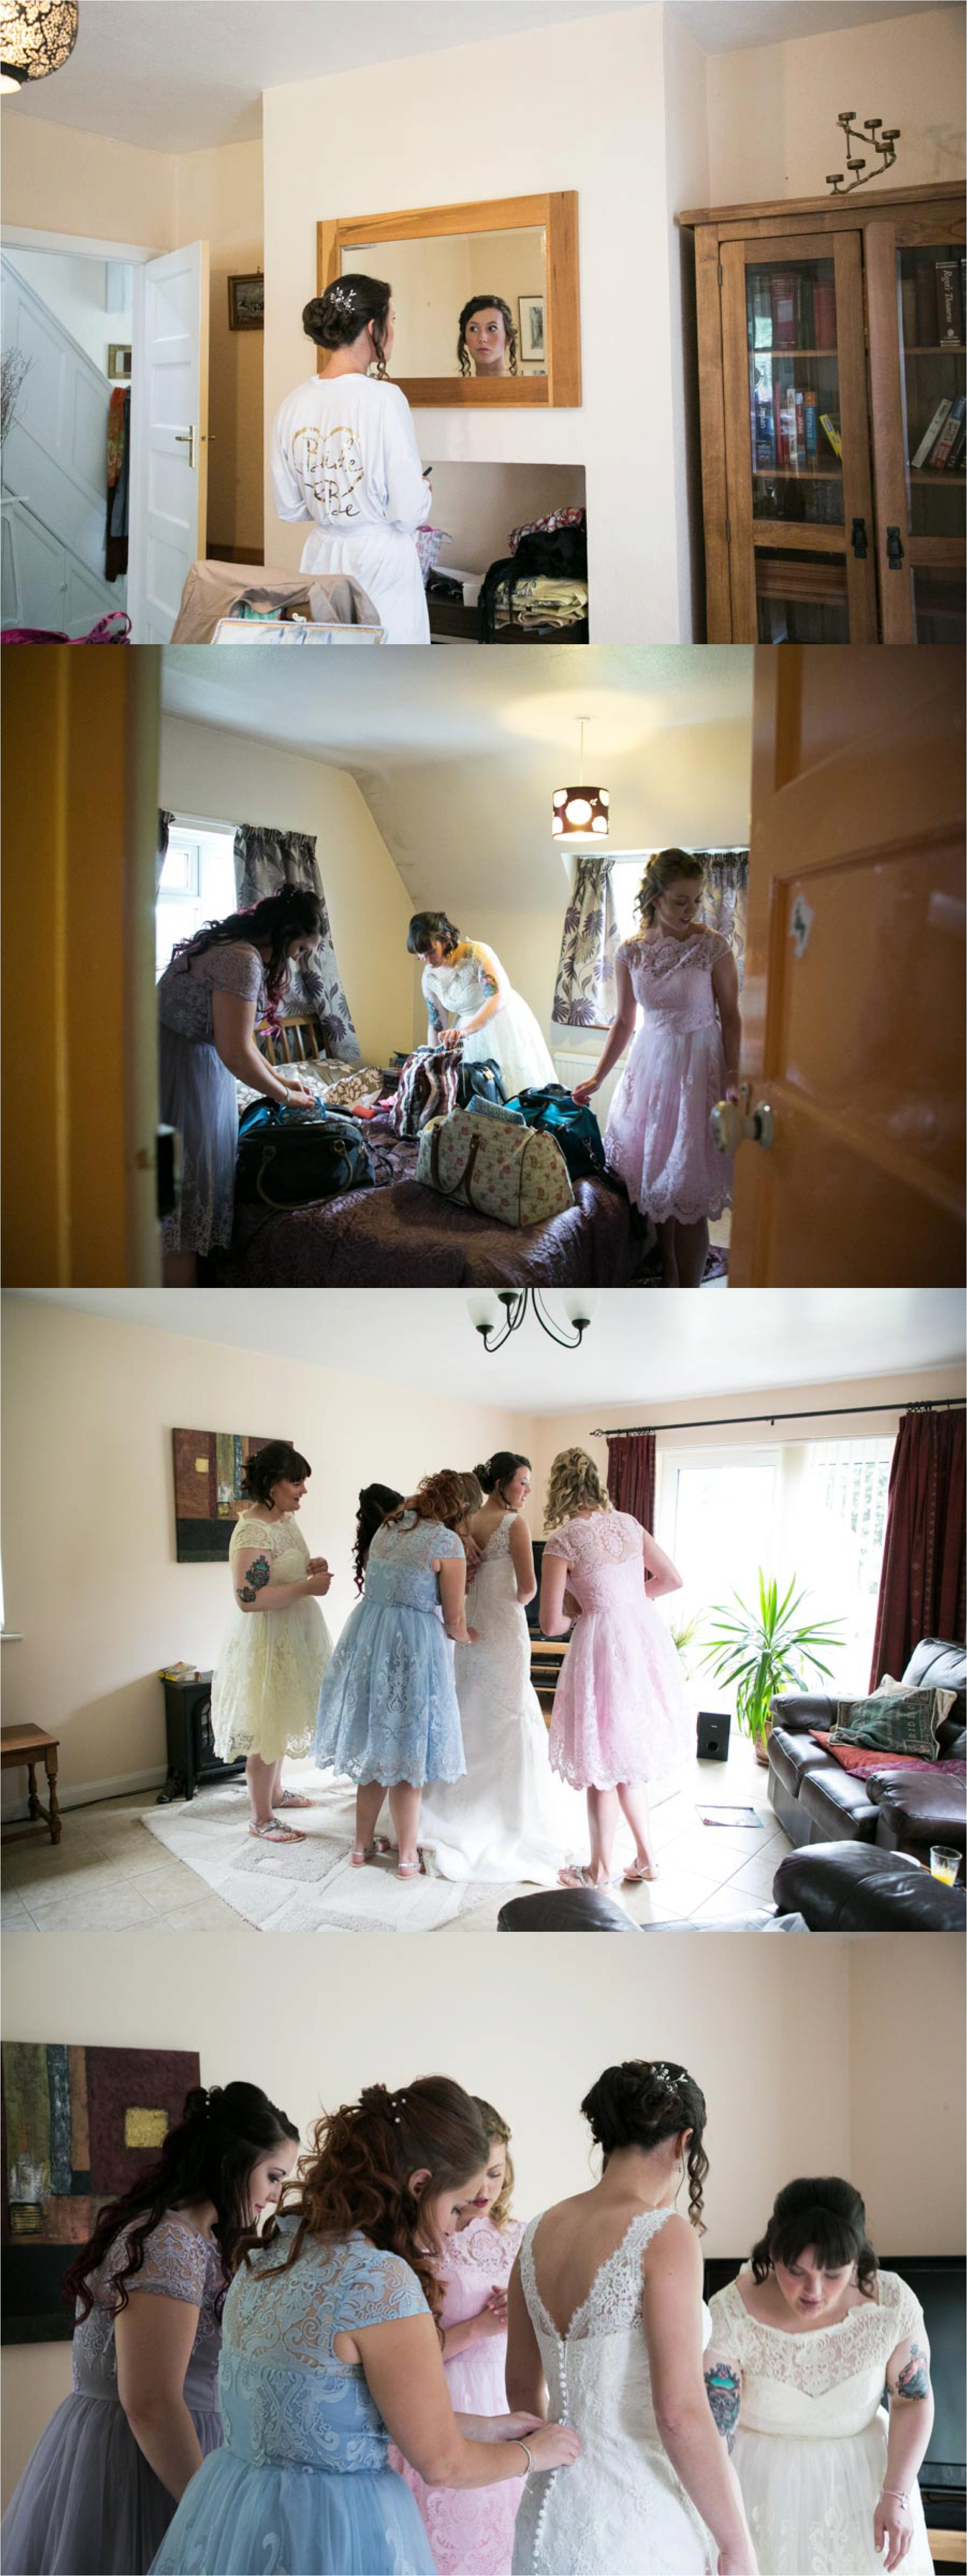 bride and bridesmaids in pastel colour dresses